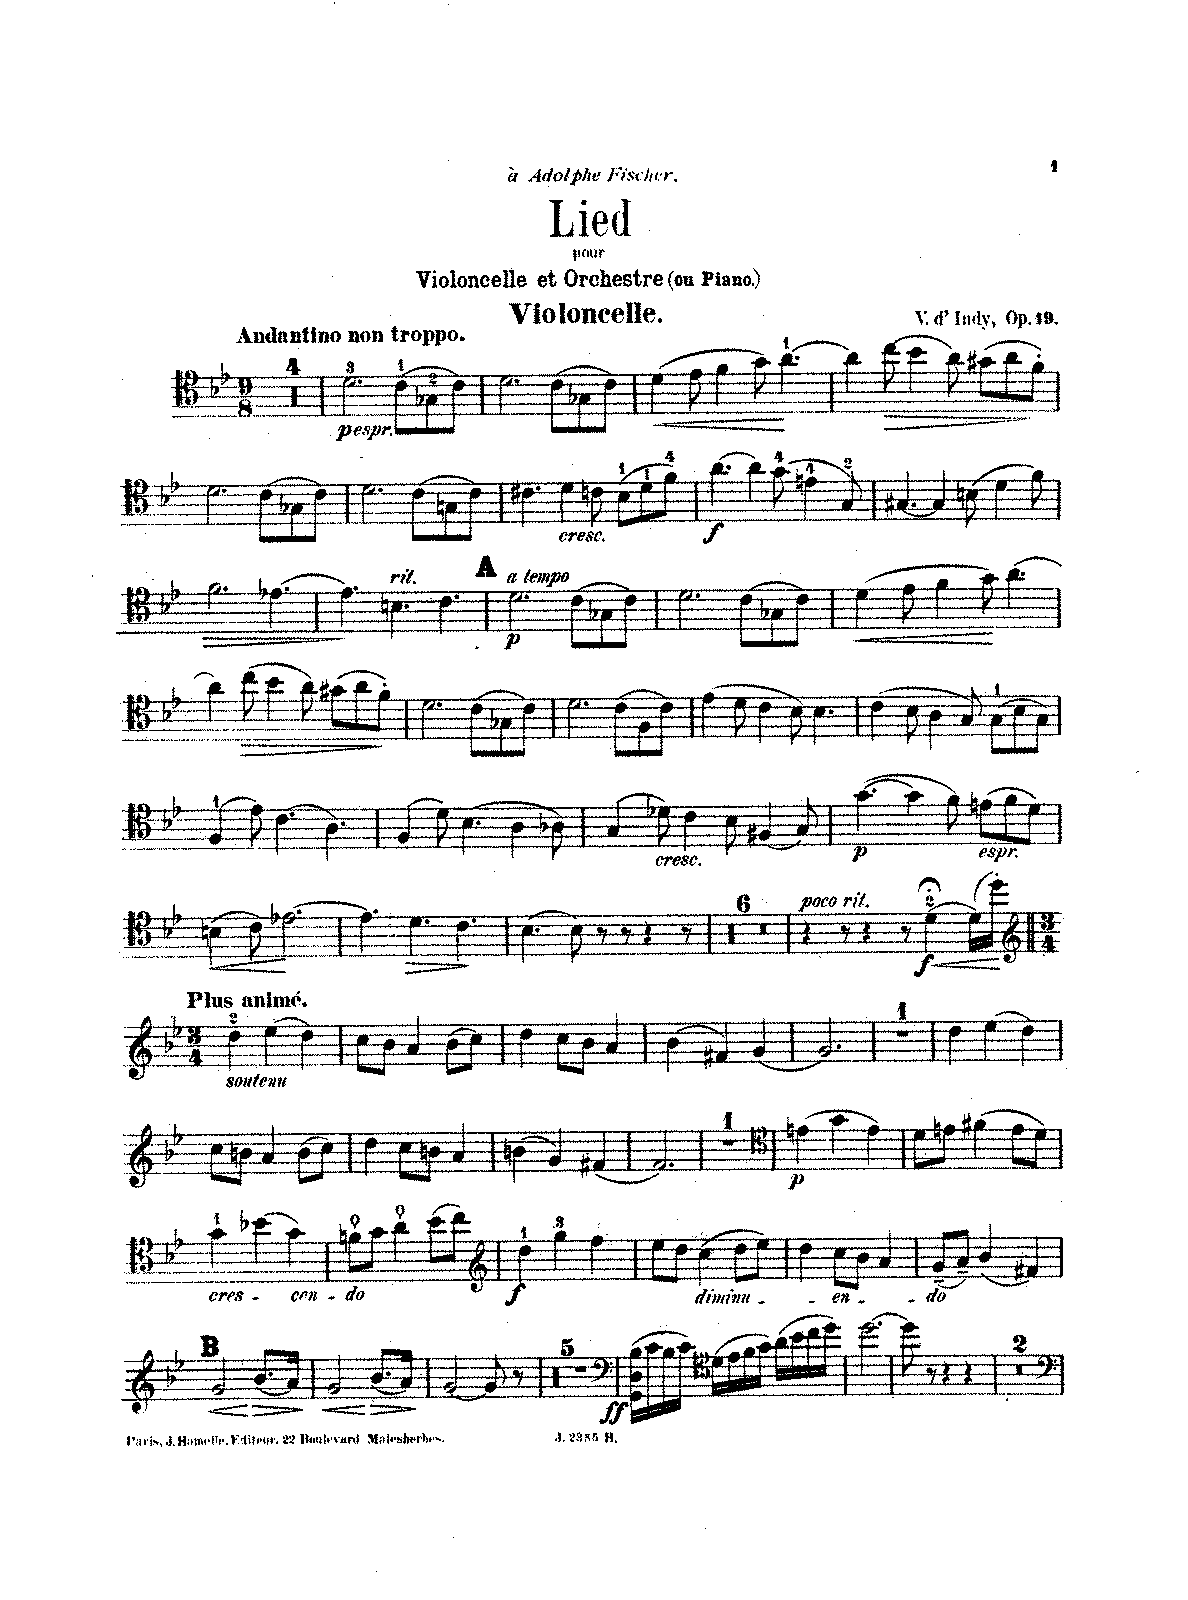 D'indy - Lied for Cello and Orchestra, Op. 19 (red. Cello and Piano).pdf